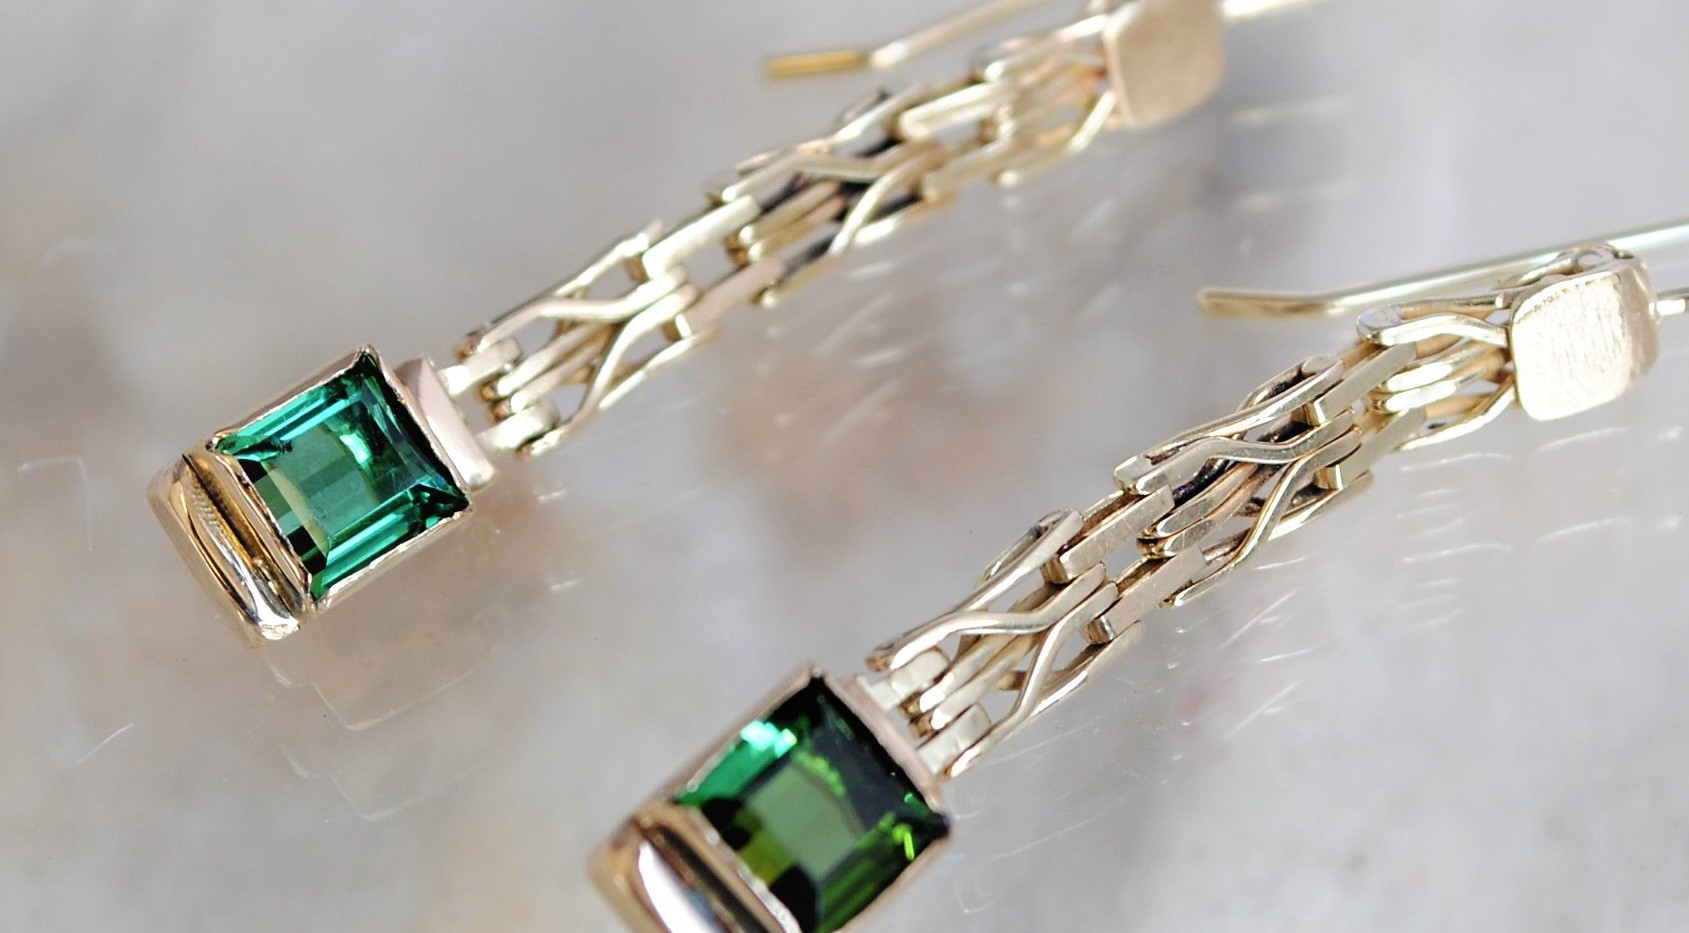 14 carats gold earrings studded with green tourmaline.